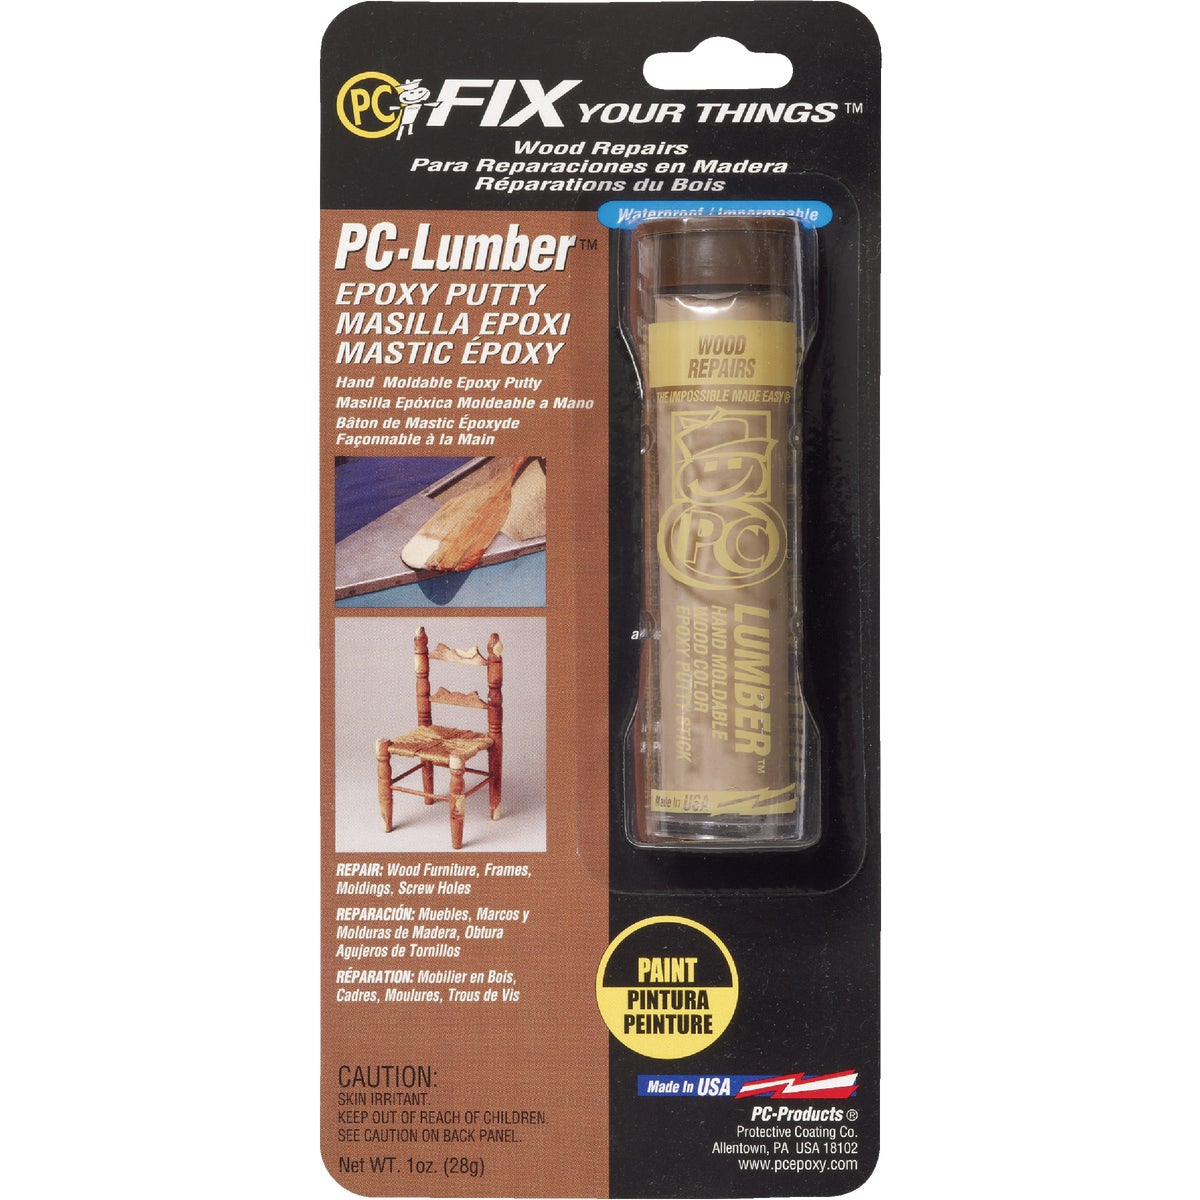 PC-LUMBER EPOXY PUTTY